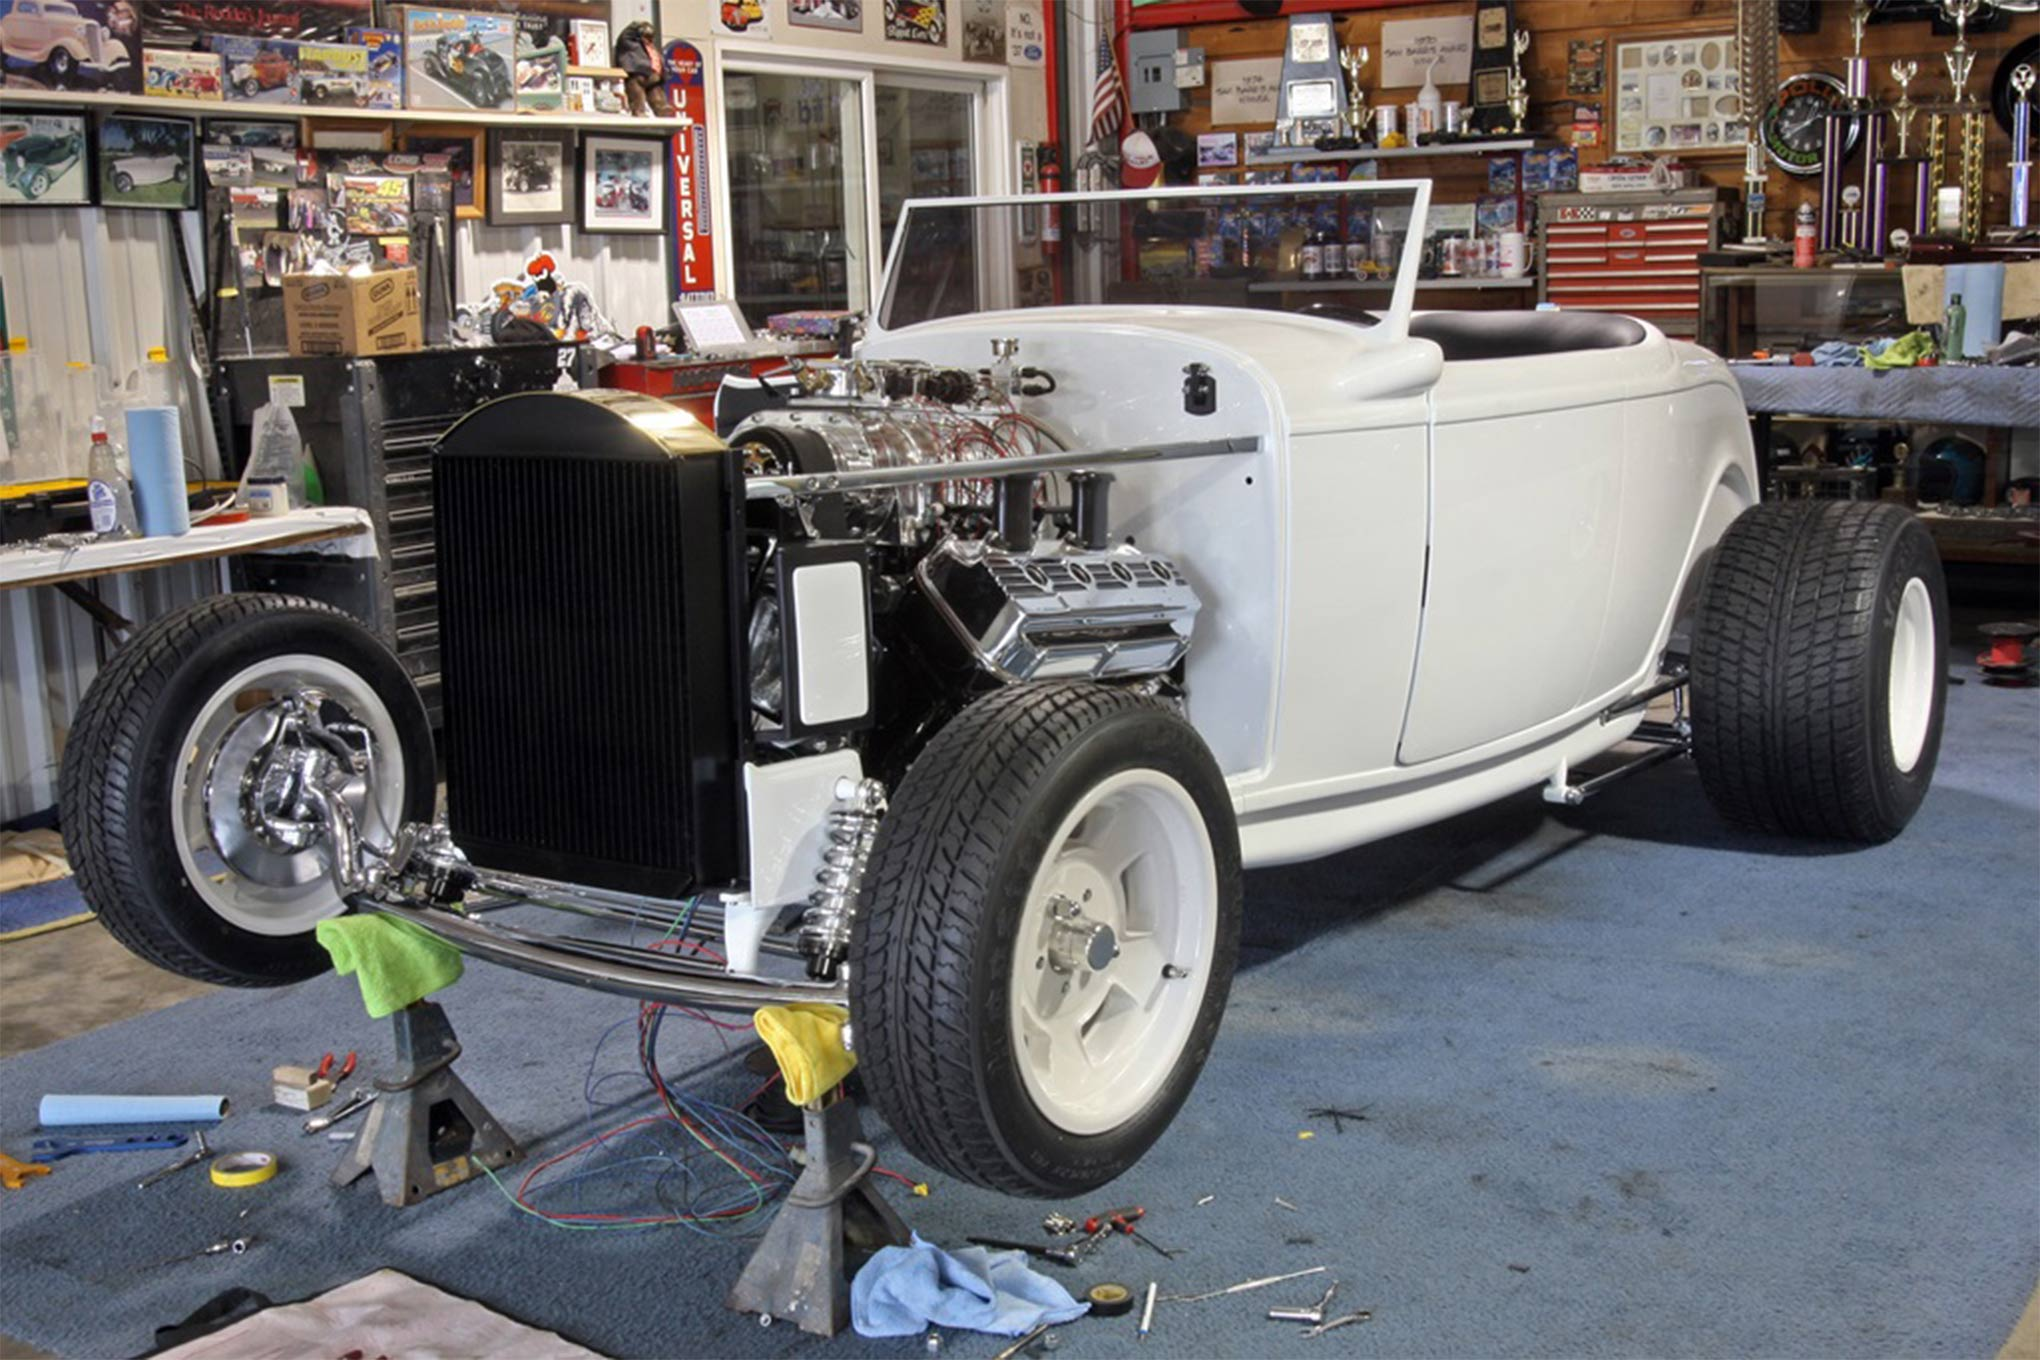 Gary Matranga's famous 1932 Ford roadster was a big hit at the 1989 Grand National Roadster Show, and will be returning for at the 2016 show. Our photos of the car undergoing restoration were shot at Tim's Hot Rods.